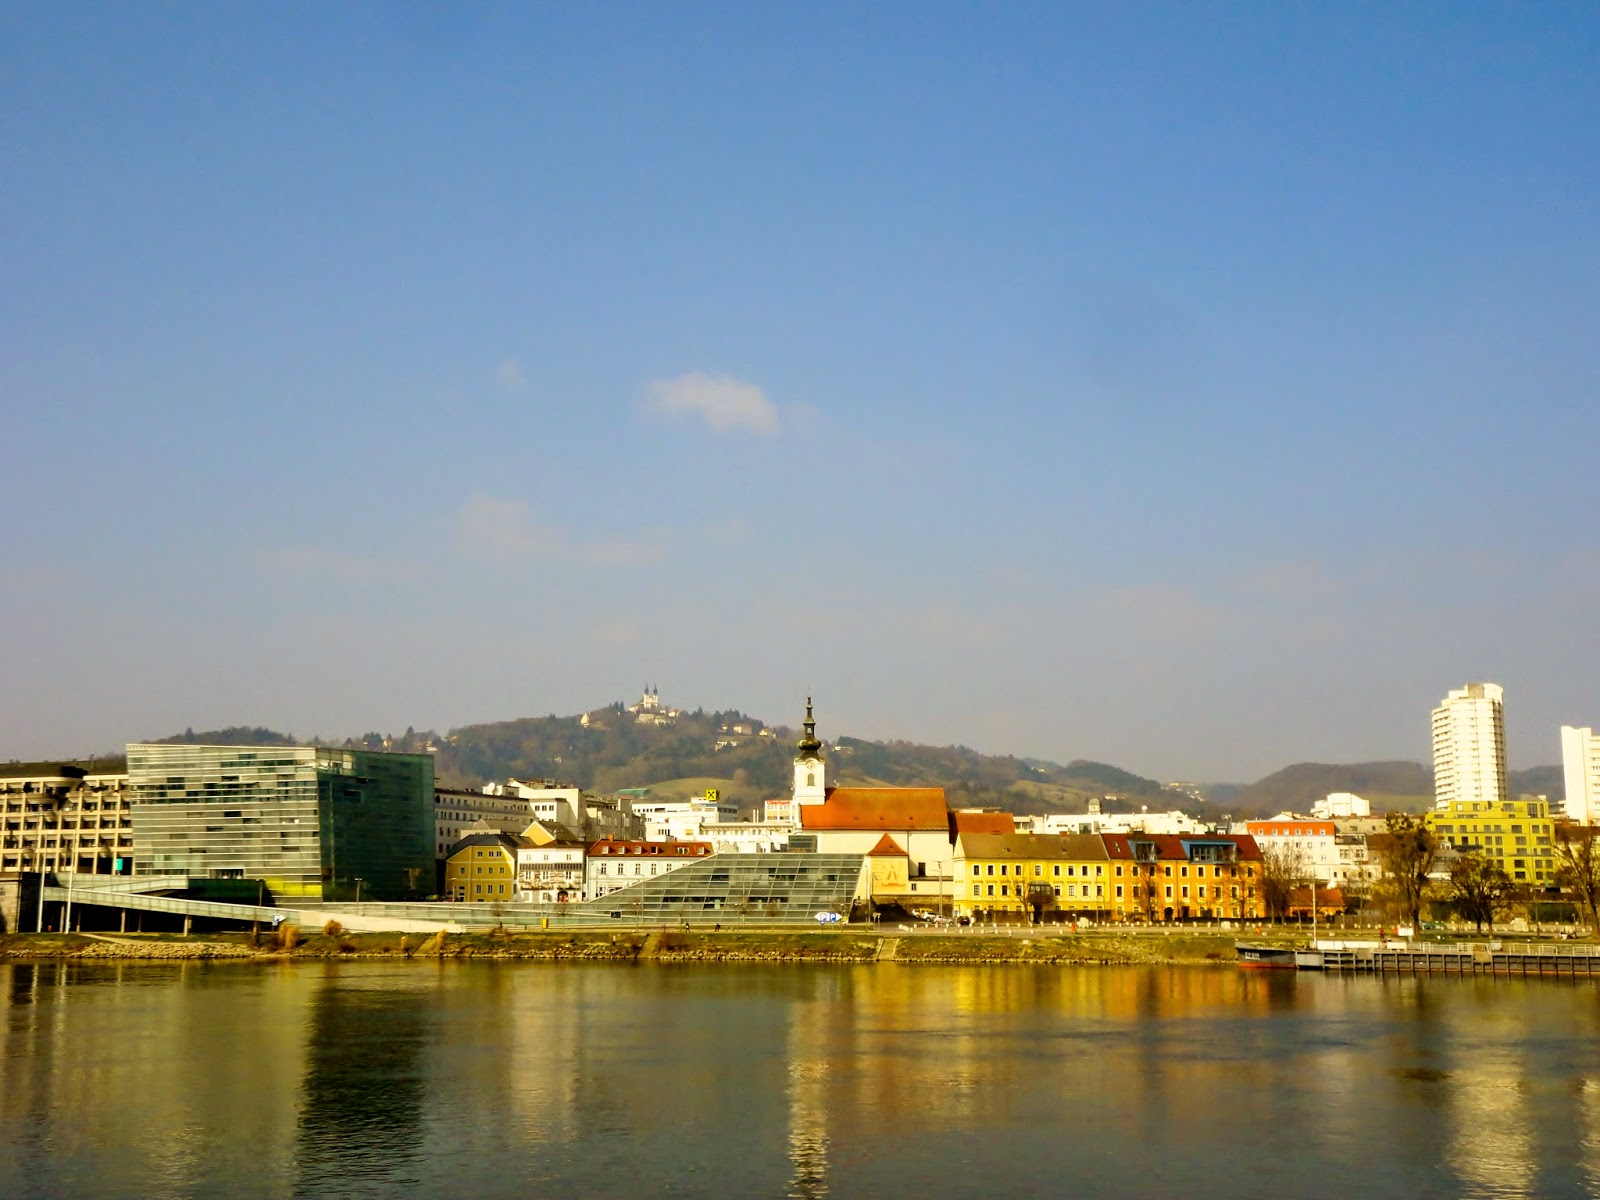 View over the river in Linz, Austria